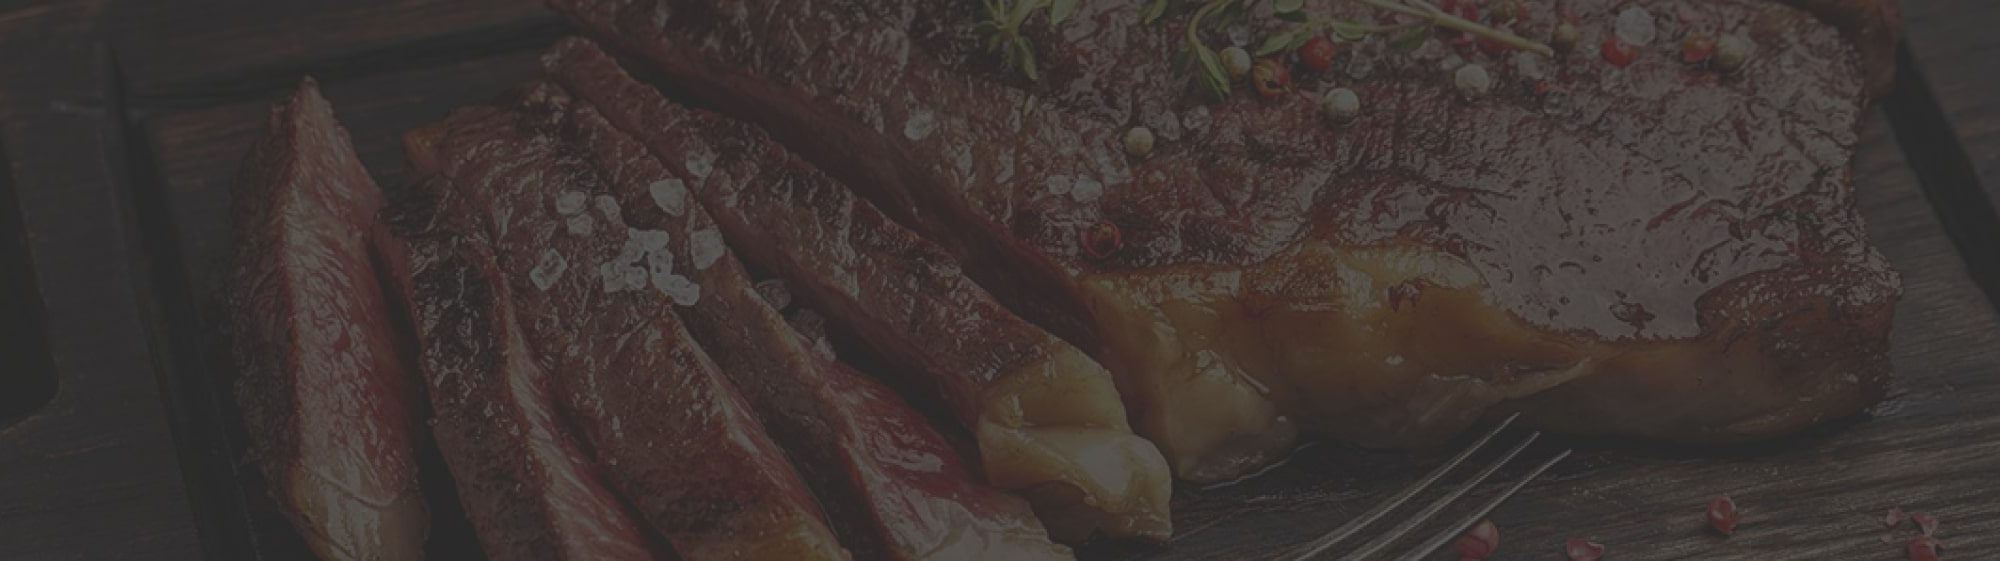 meat4you-header